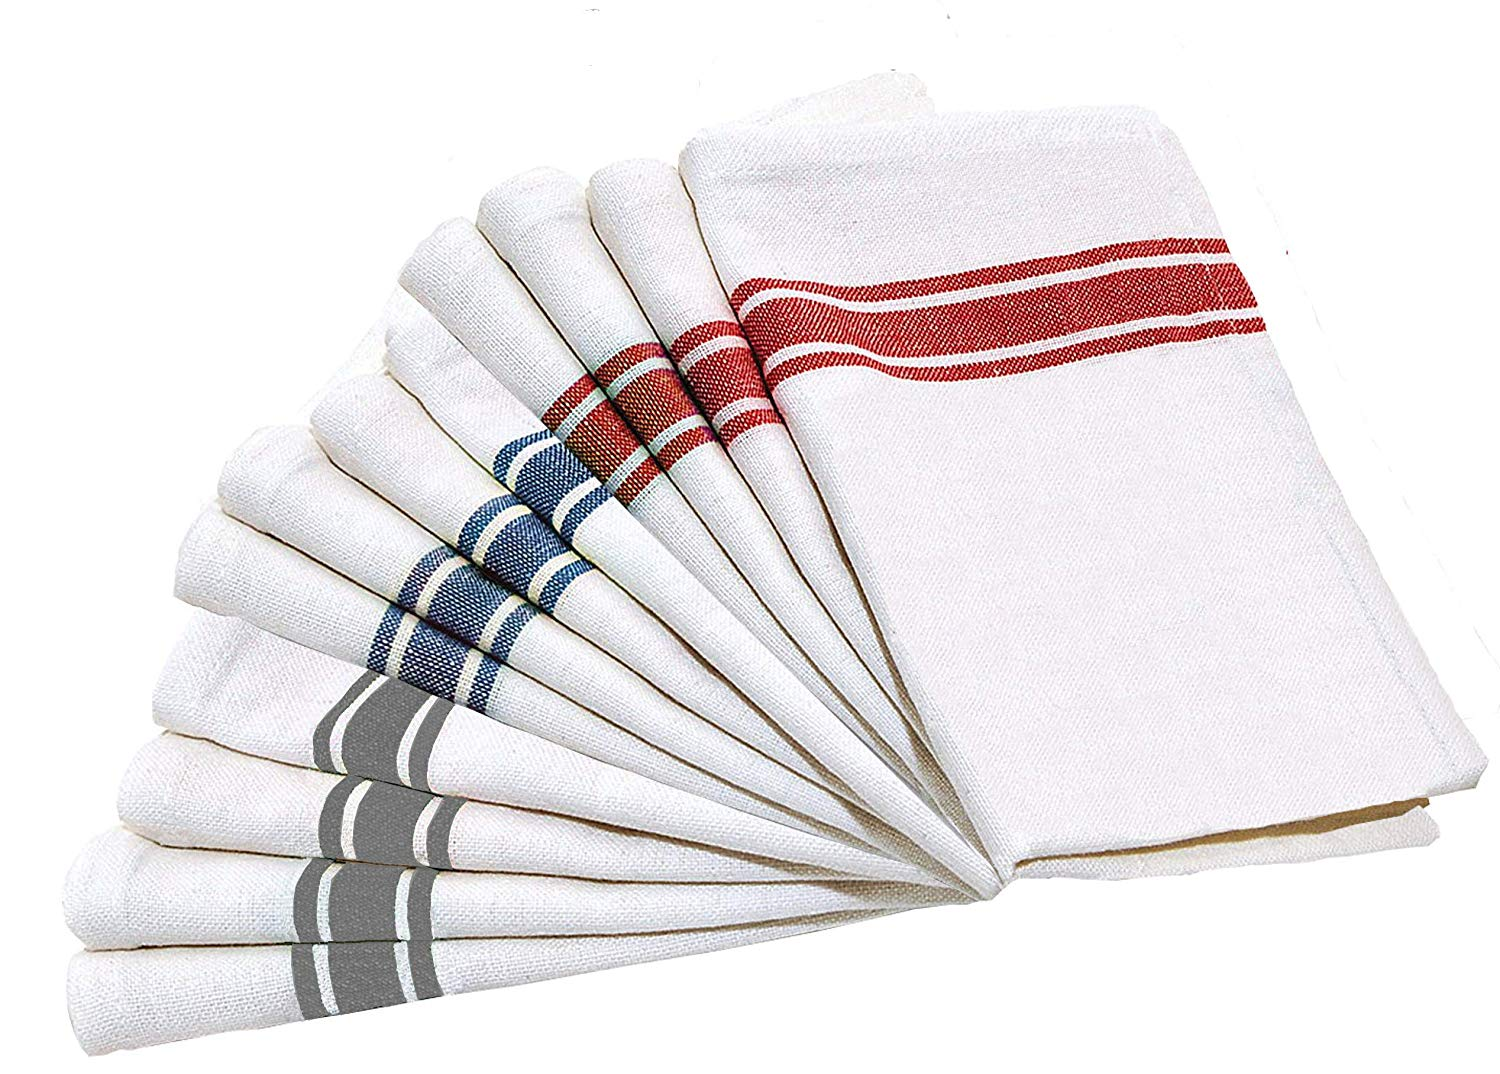 Cheap Blue And White Kitchen Towels, find Blue And White